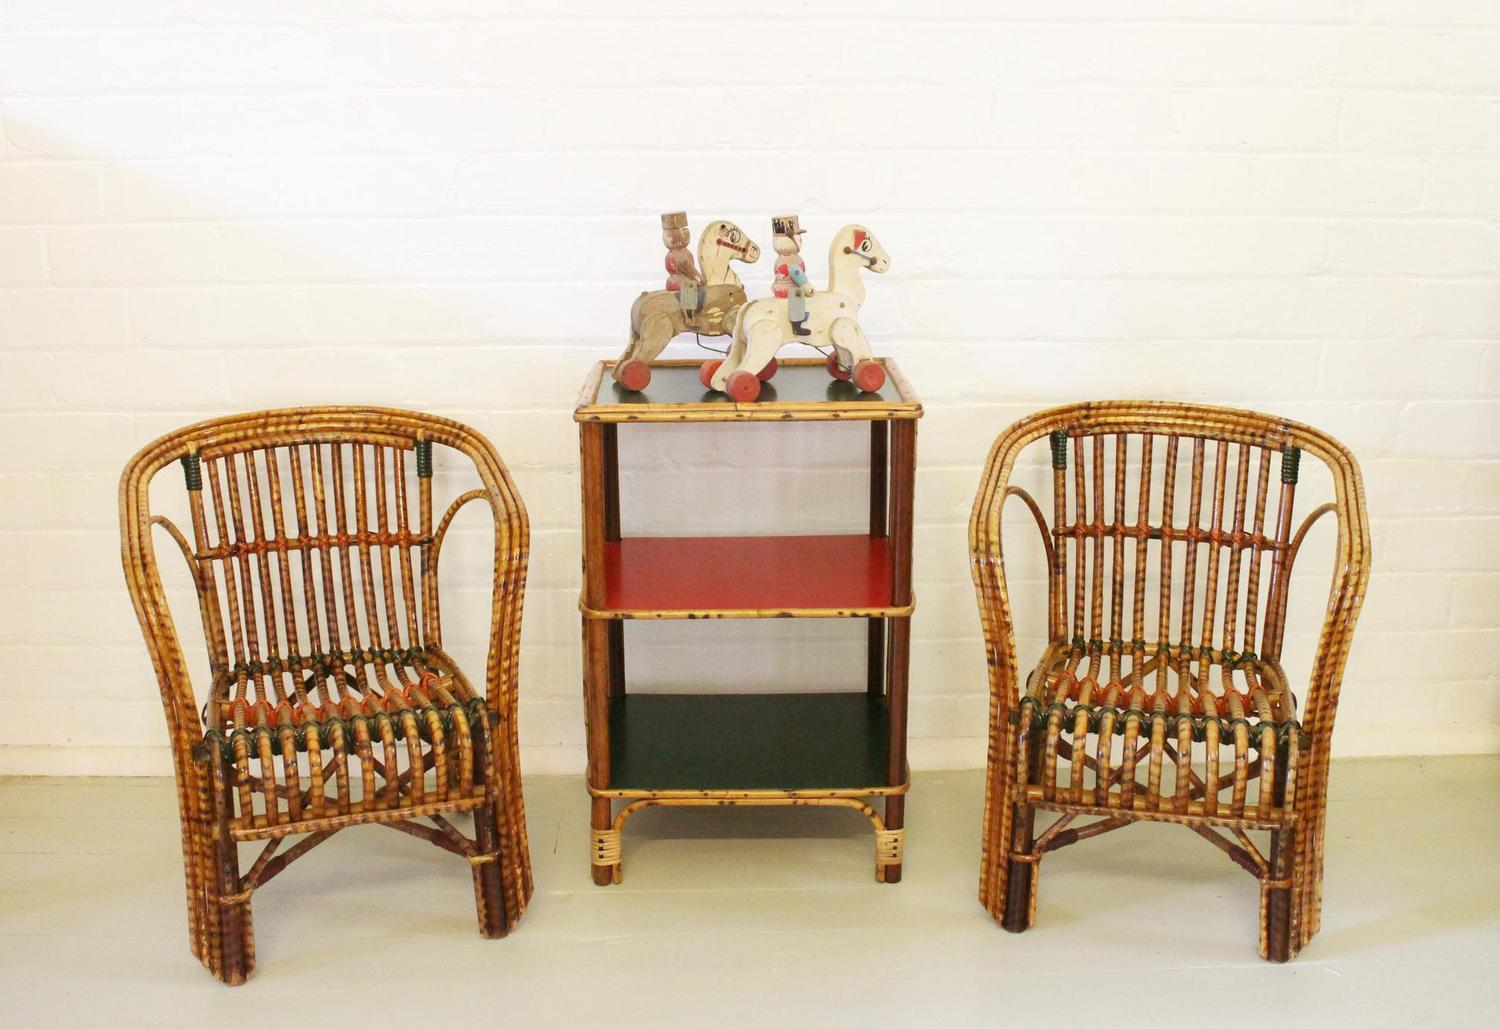 Vintage Cane Chairs.jpg - Pair Of Vintage Cane Children's Chairs — Antiques Industrial